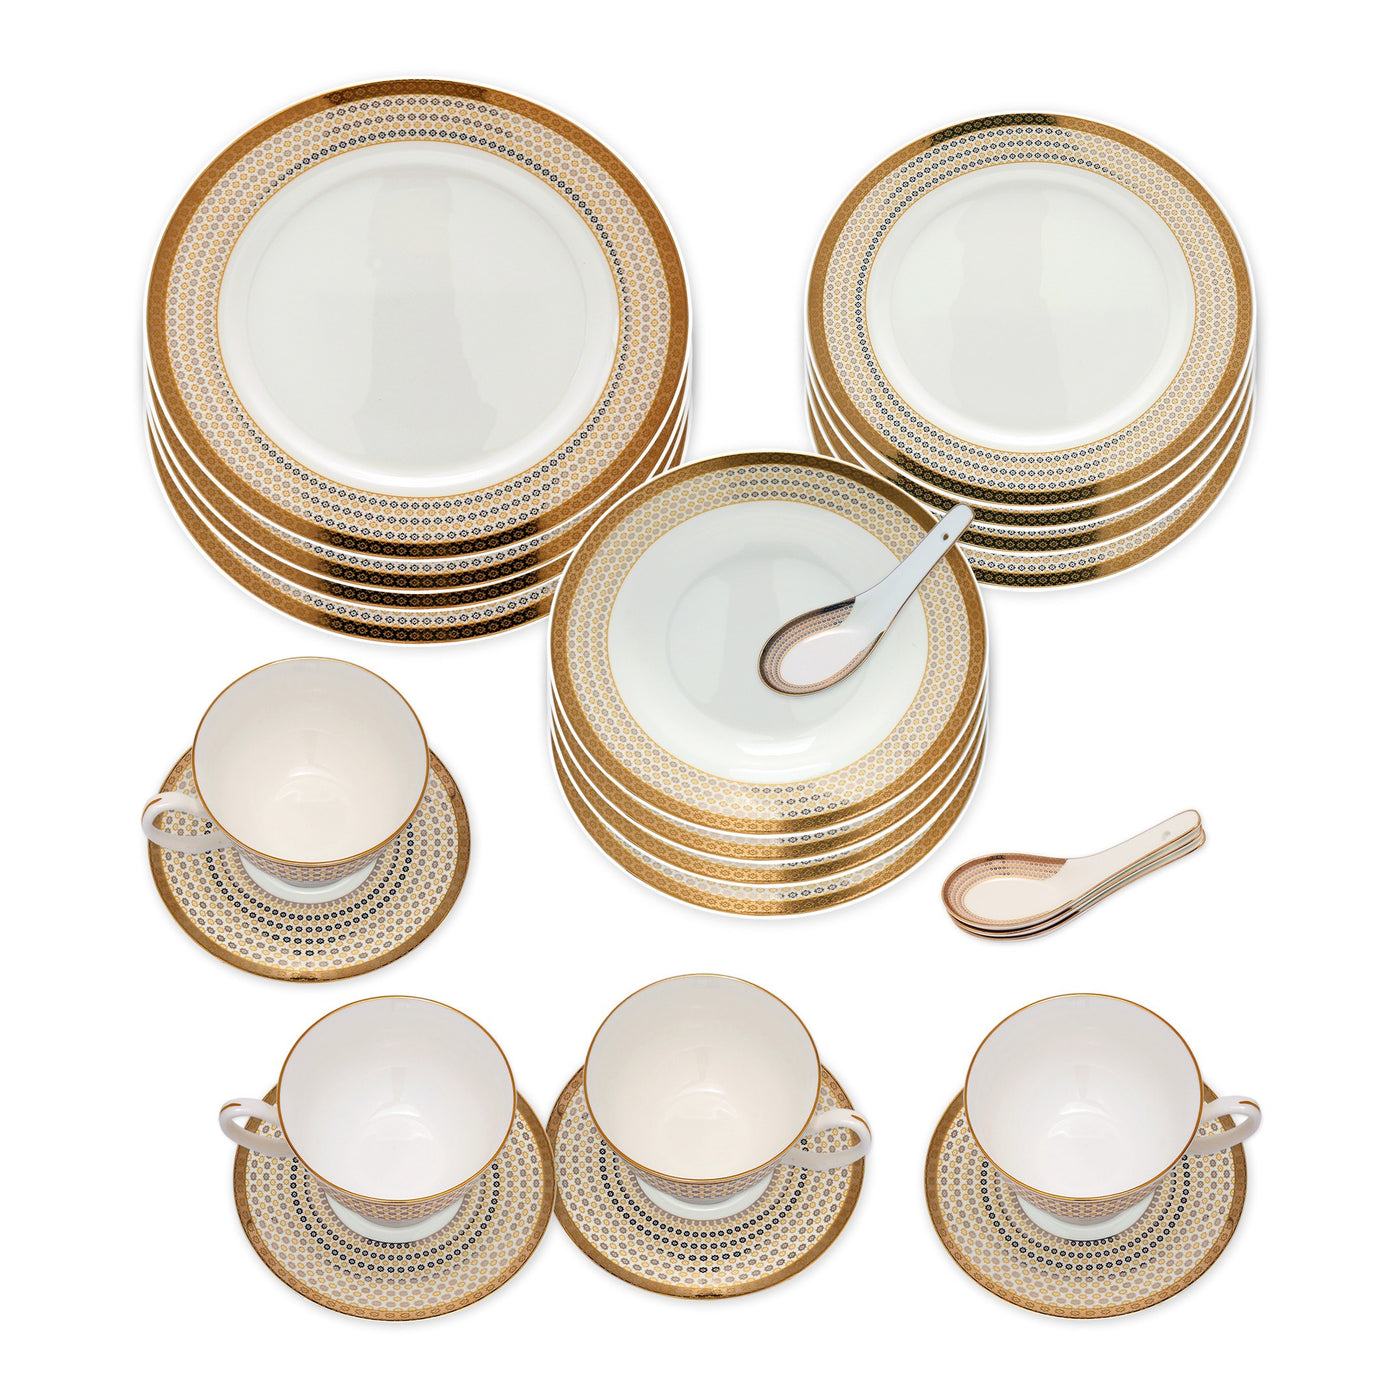 ... Dinnerwares - Bone China 24 Piece Dinnerware Set Diamonds And Gold Border Service For 4 ...  sc 1 st  Homenique.net & Fine Bone China Dinnerware Set - 24 Piece Service for 4 - Dotted ...